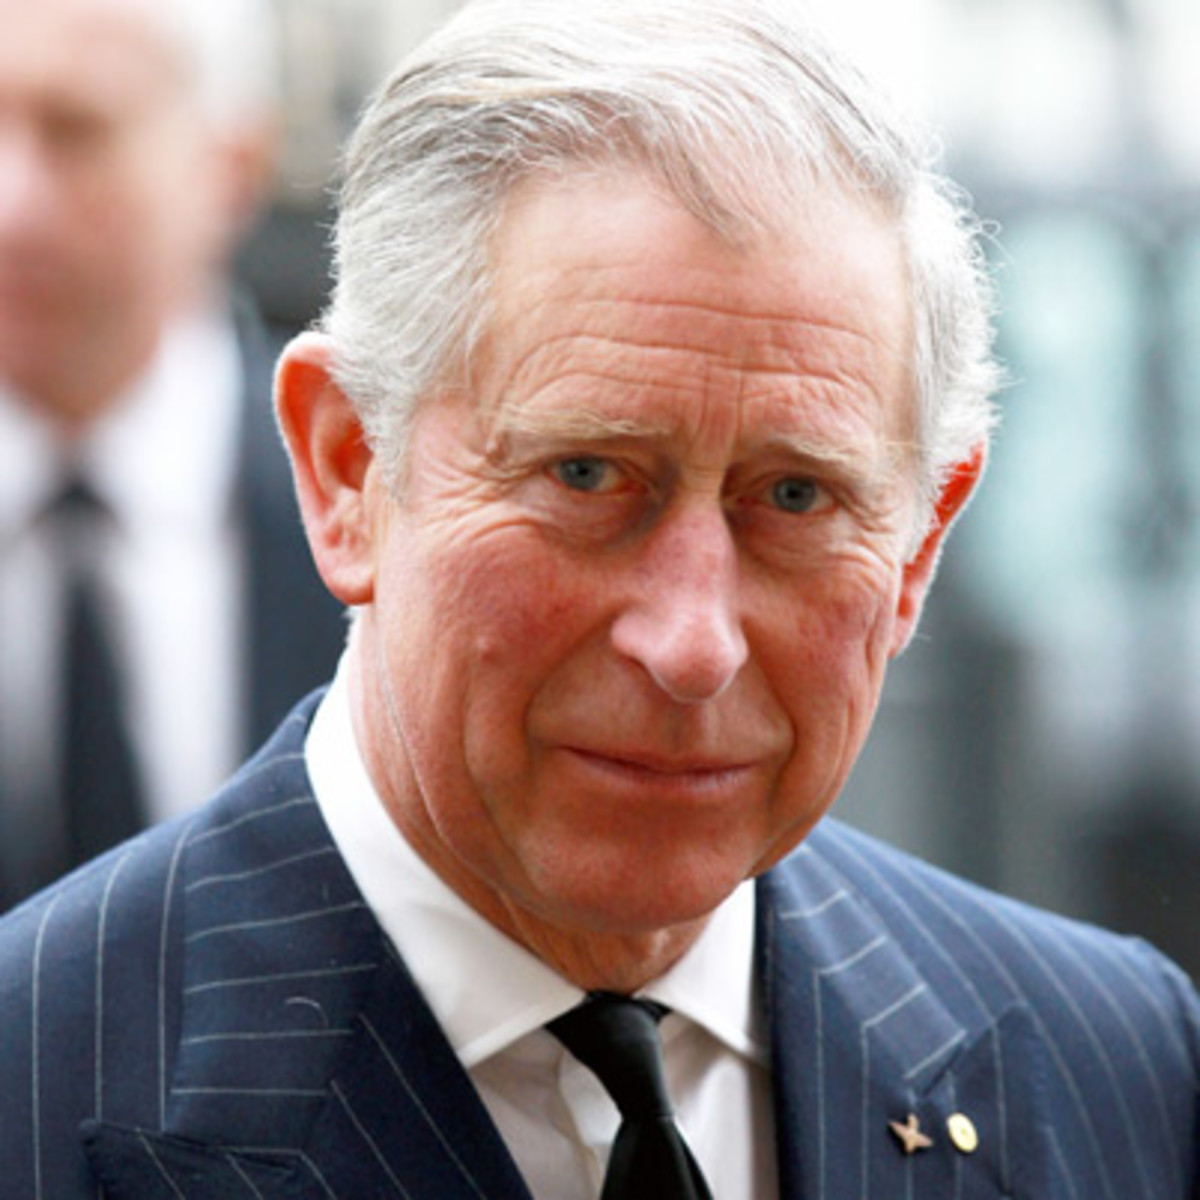 Prince Charles set to visit Dorset today